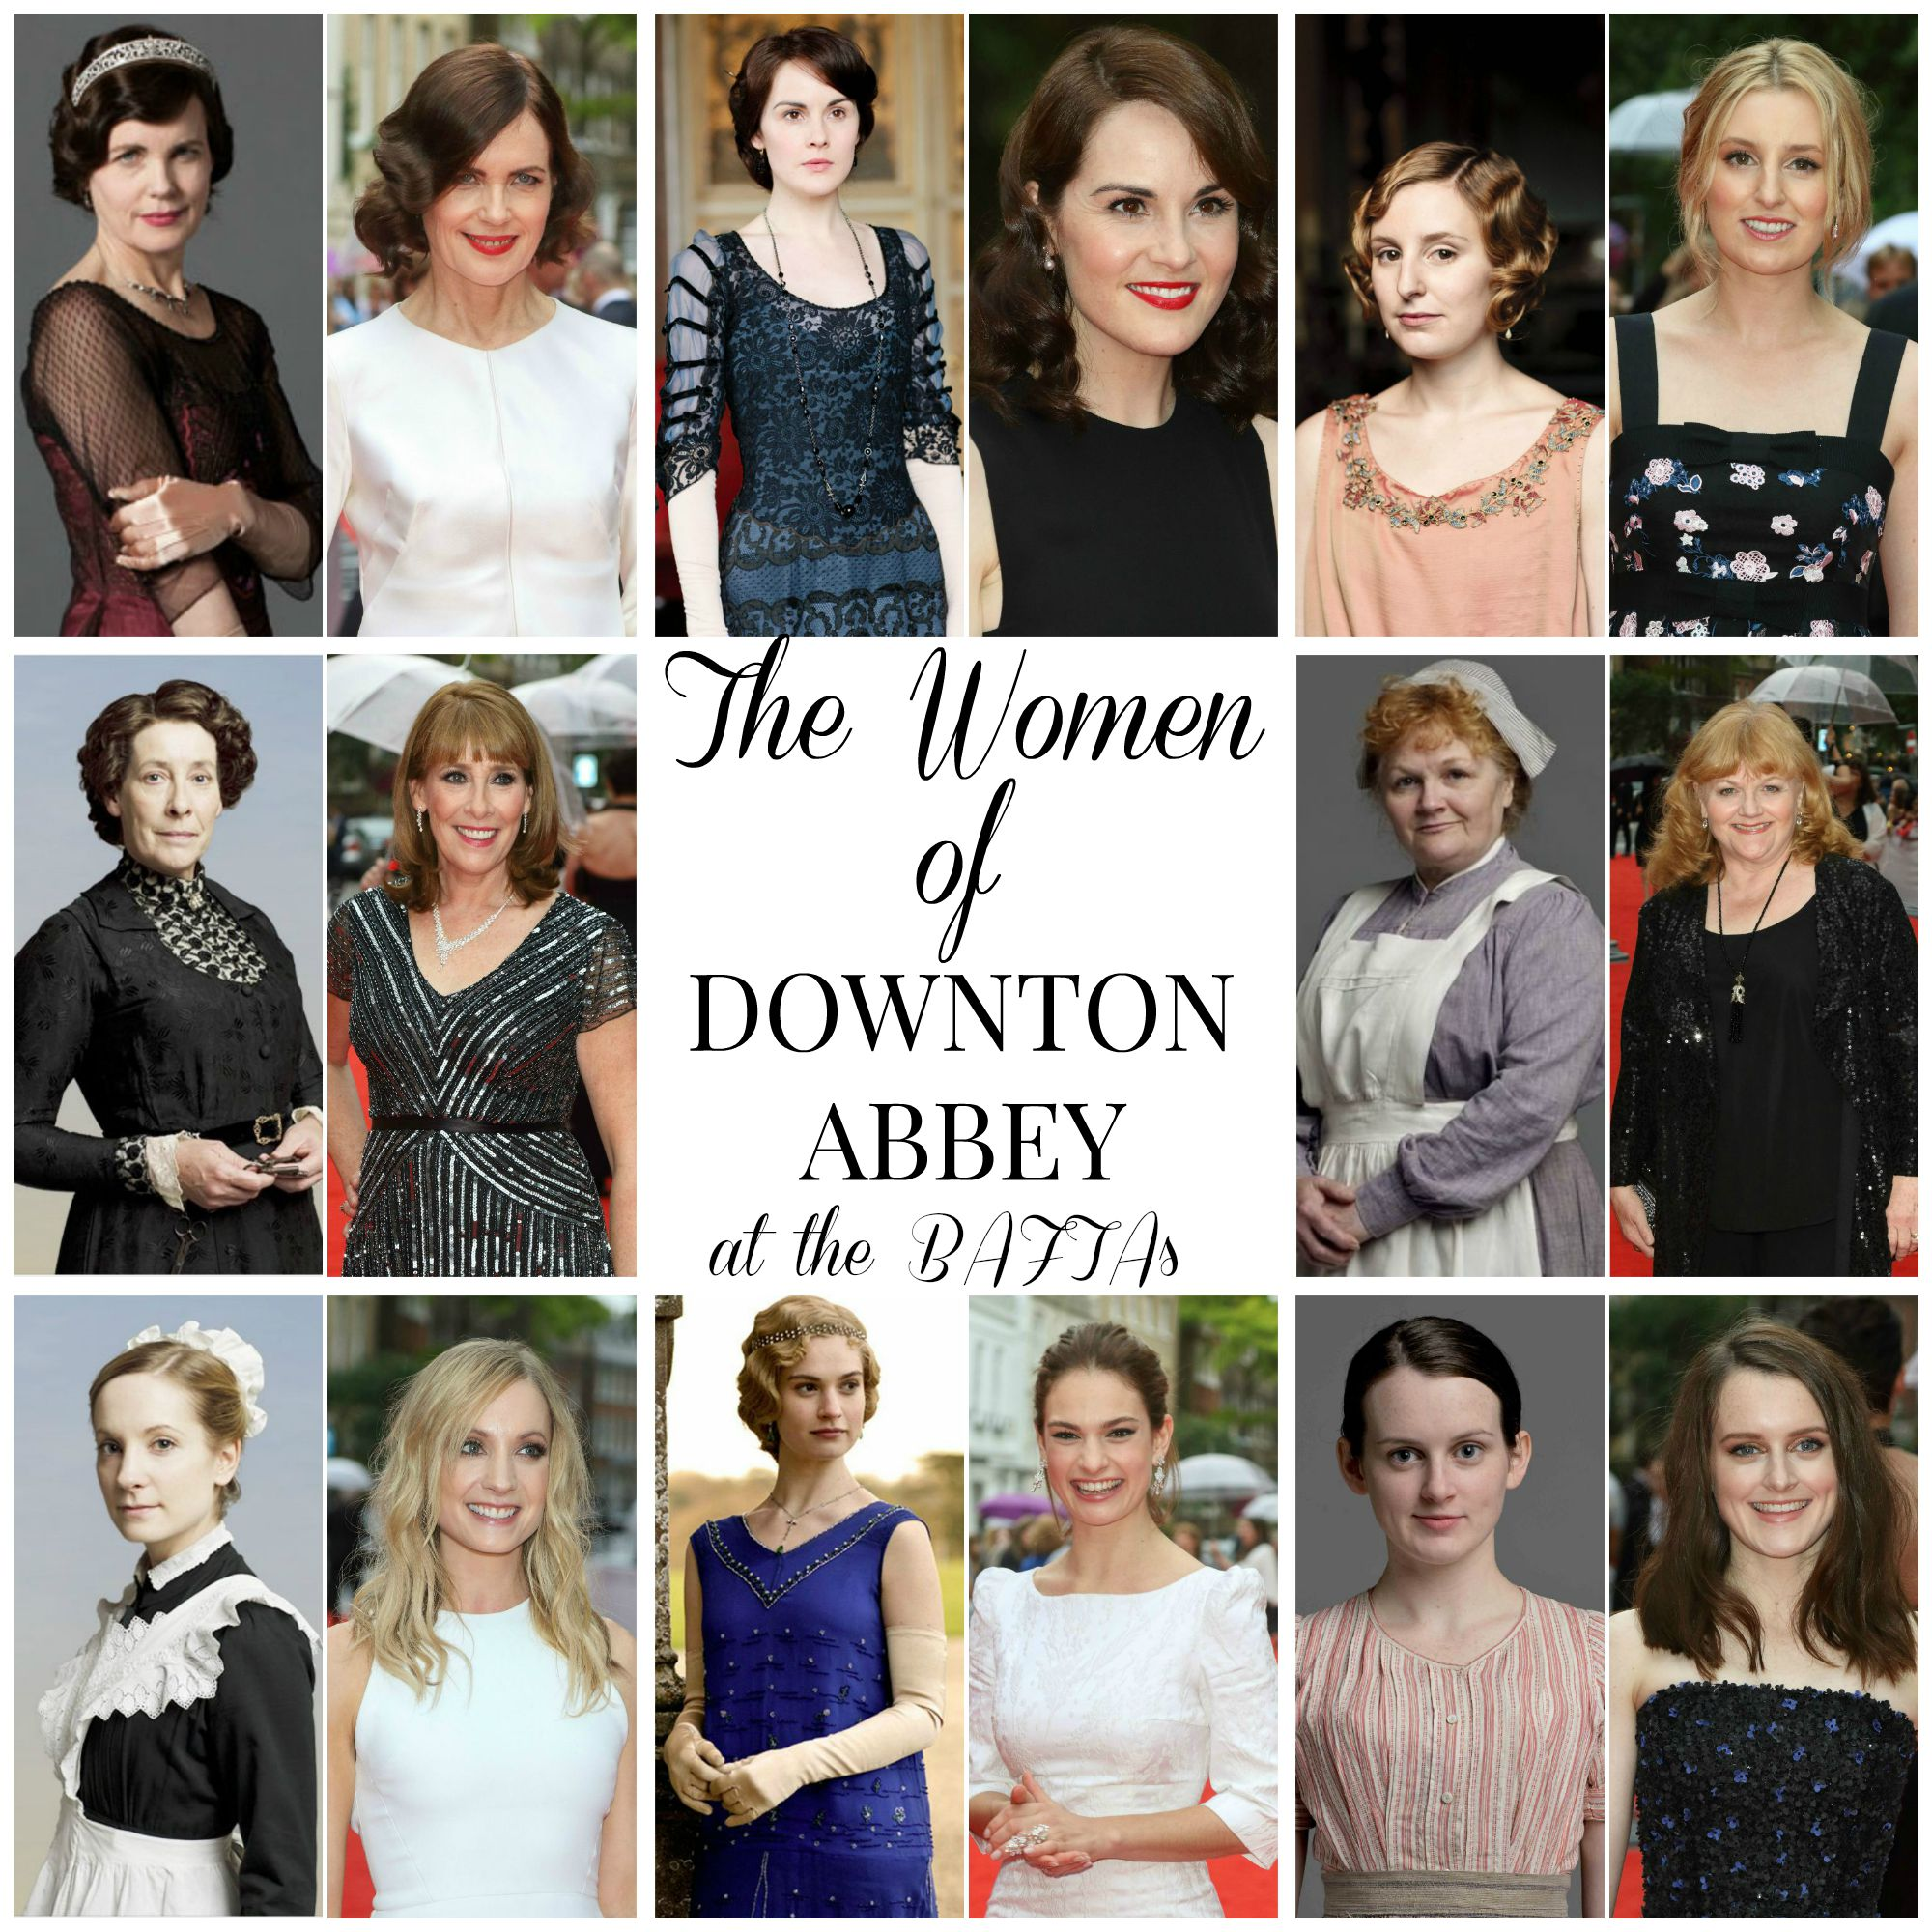 Hairstyle Ideas Featuring the Women of Downton Abbey